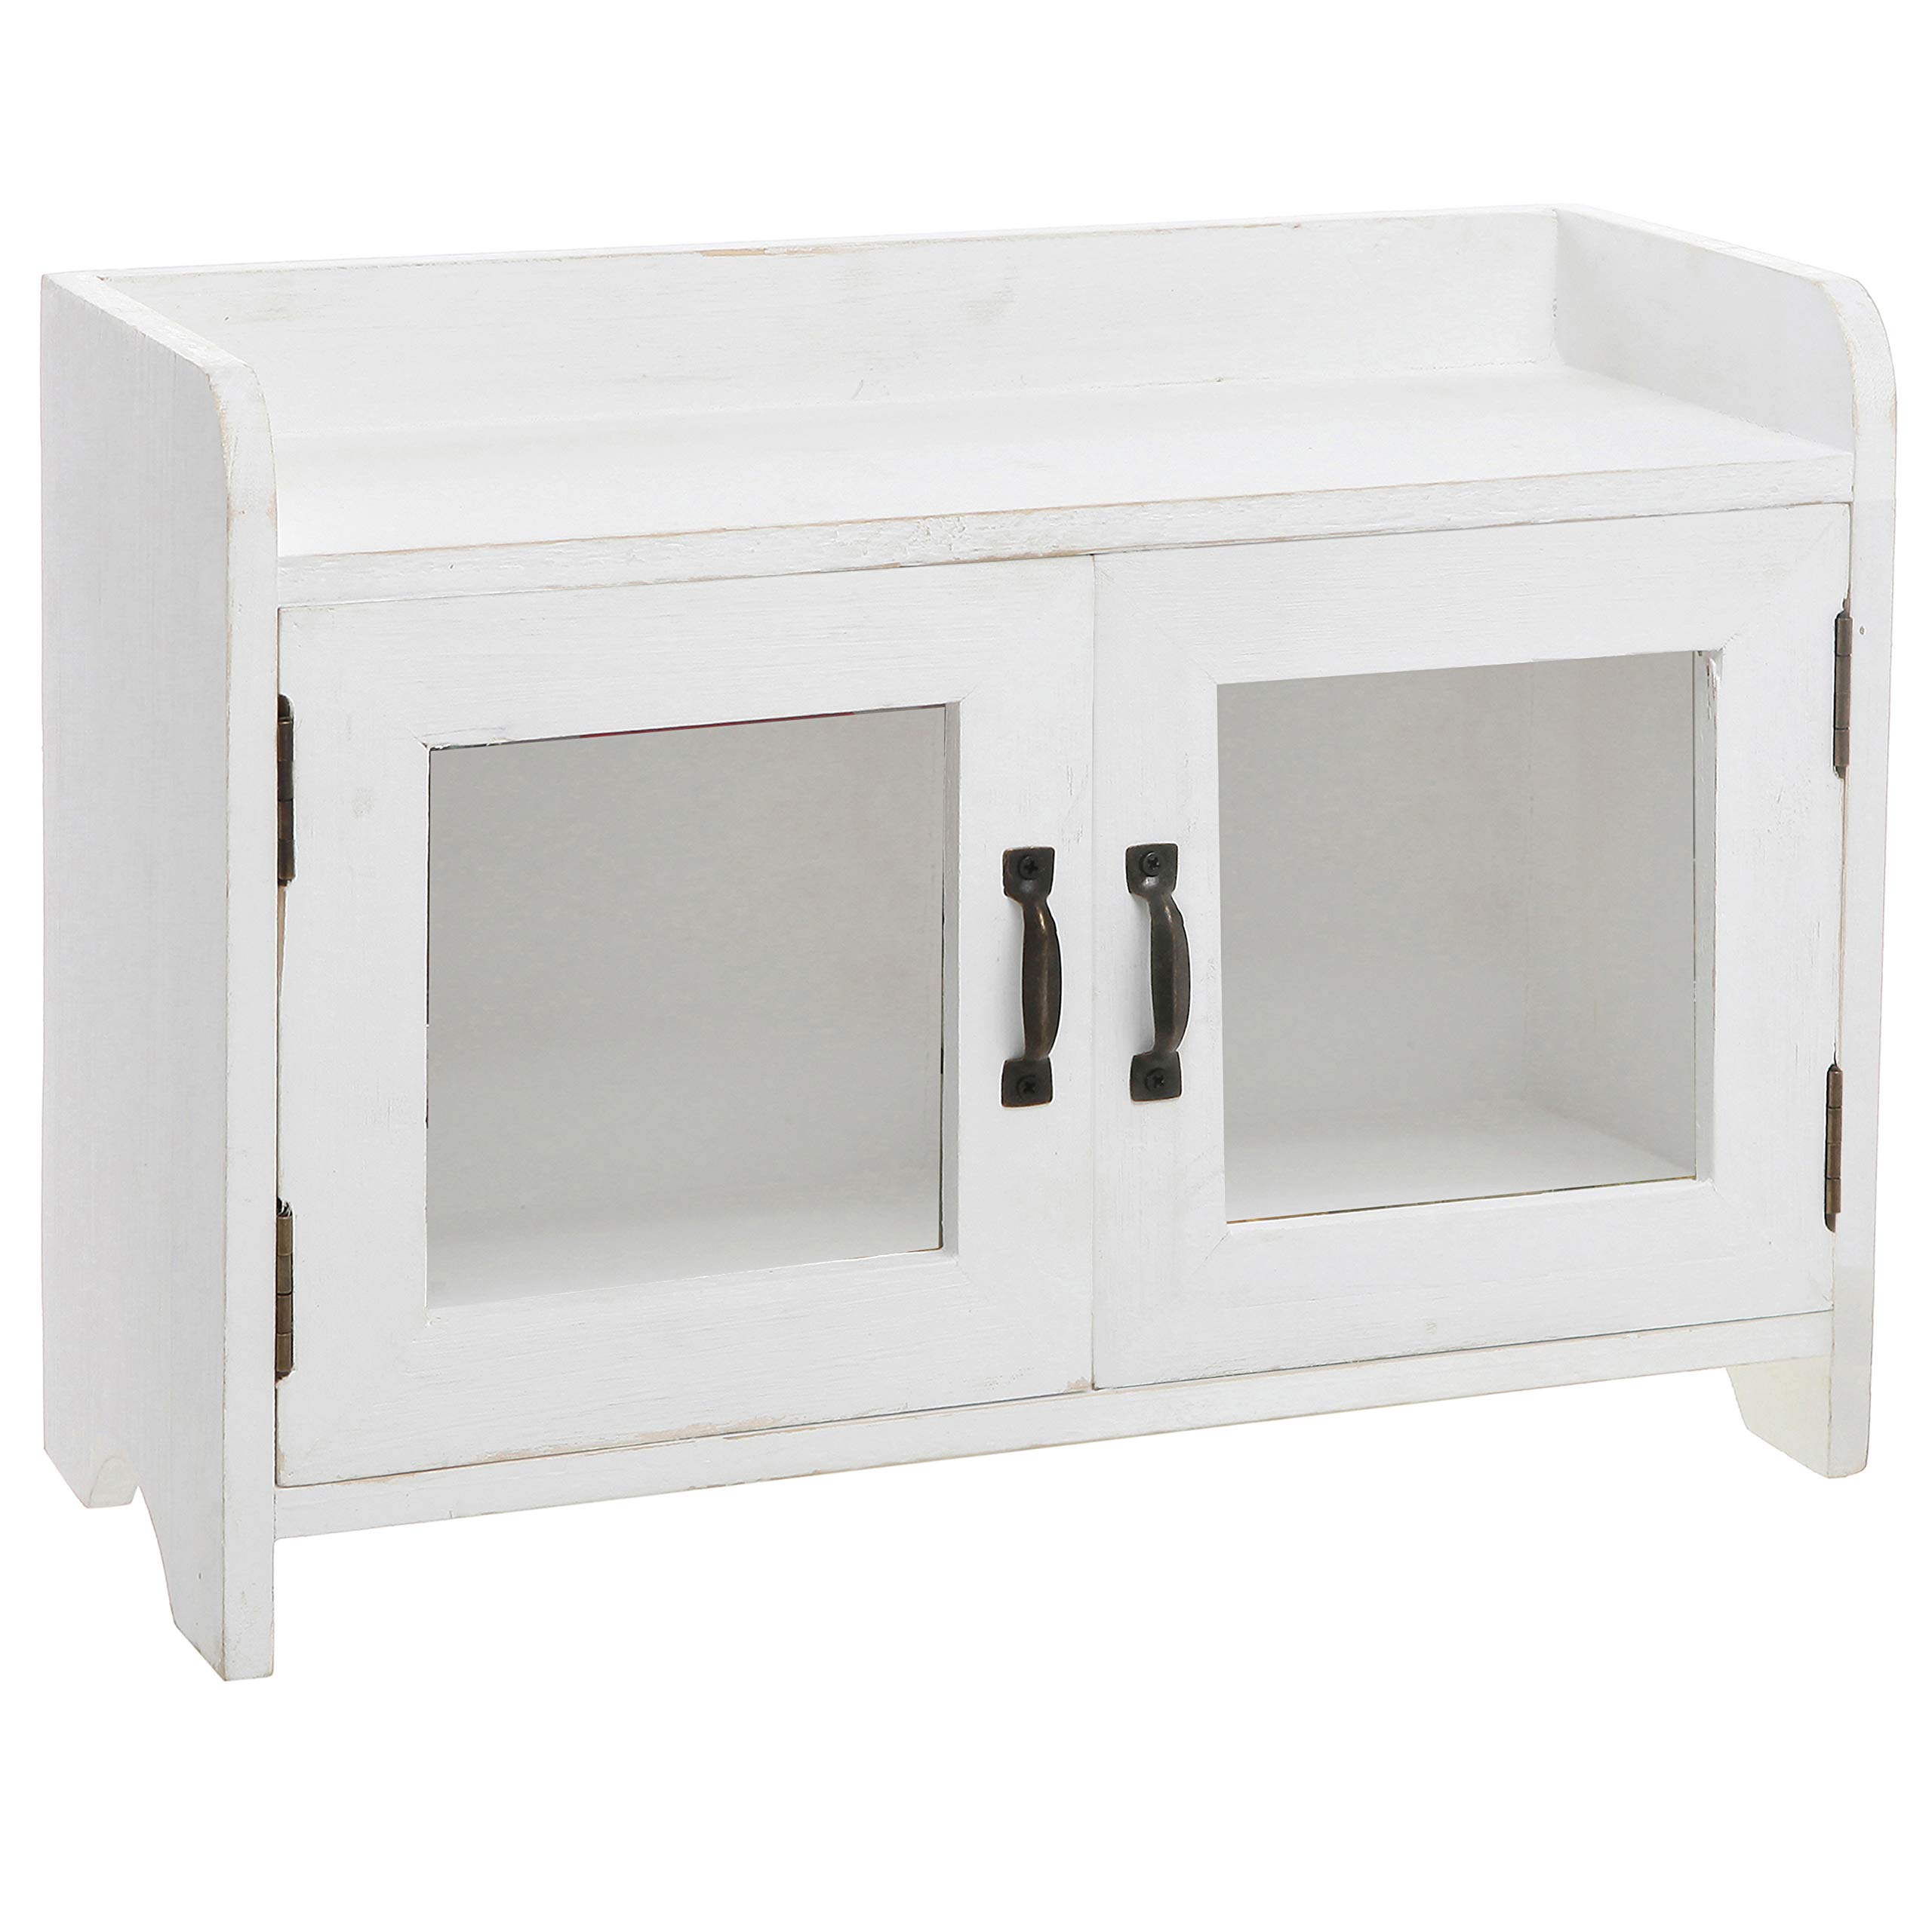 MyGift Antique White Wood Kitchen & Bathroom Countertop Mini Cabinet Organizer by MyGift